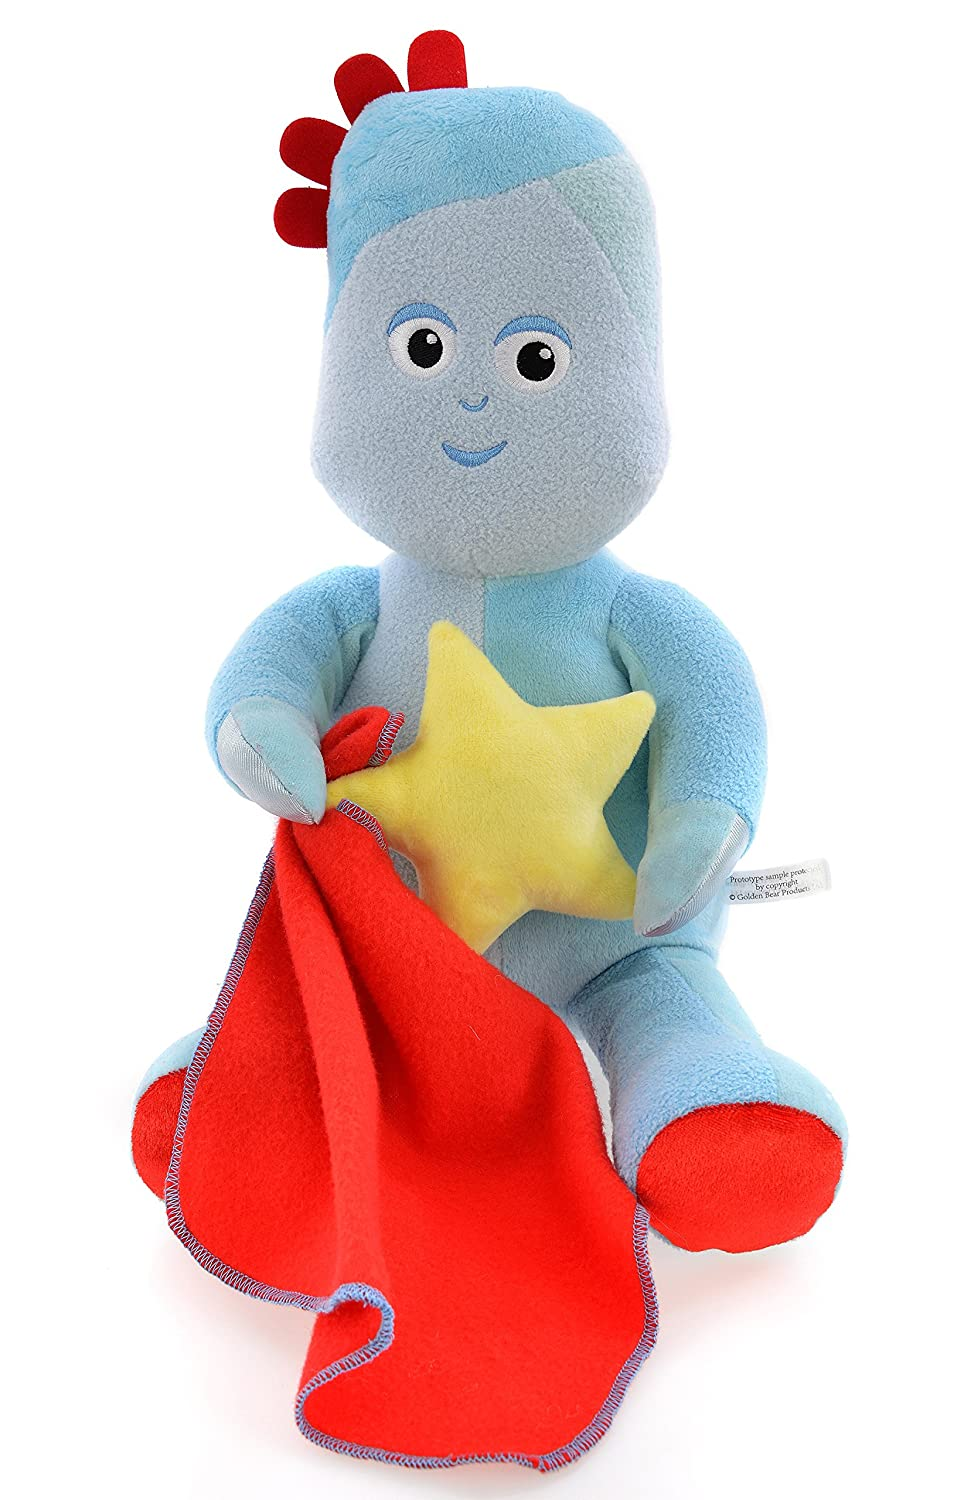 In the Night Garden Twinkling Lullaby Iggle Piggle Soft Toy Golden Bear Products Ltd 1587